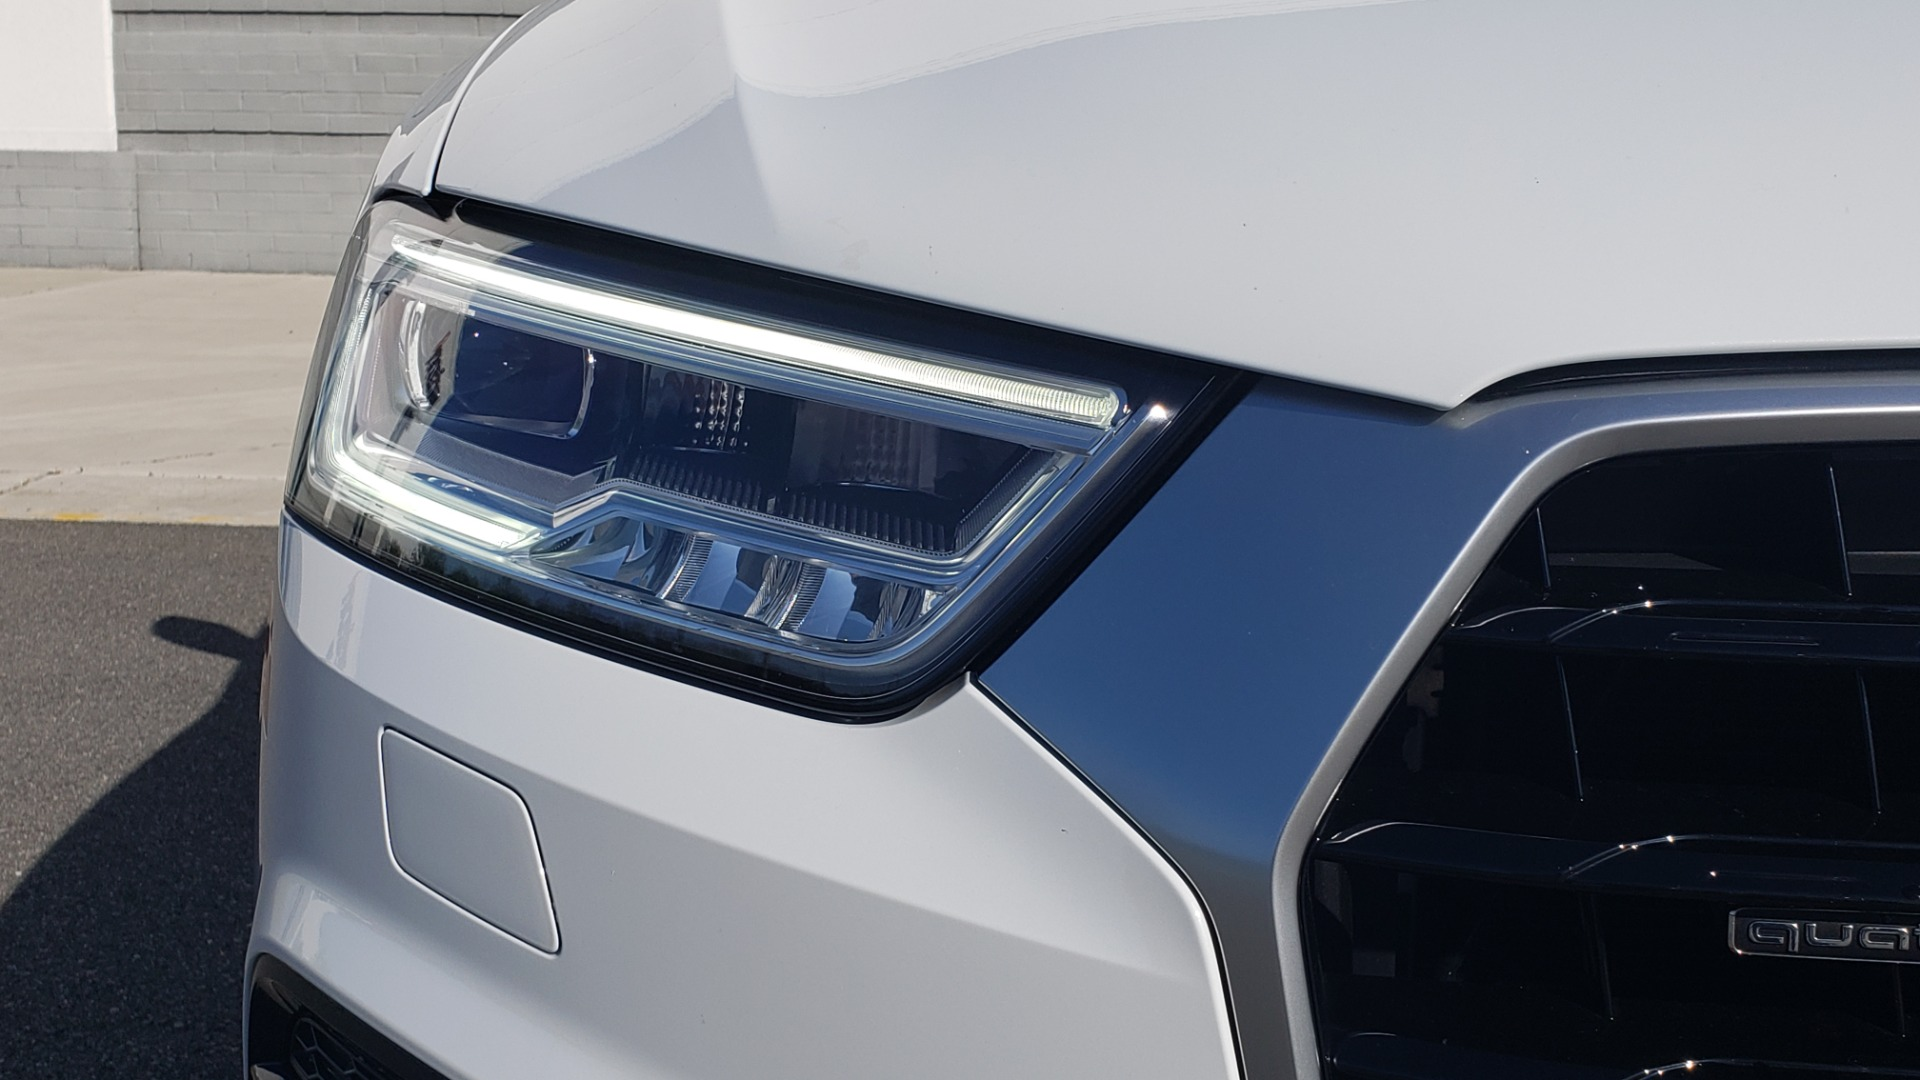 Used 2018 Audi Q3 PREMIUM PLUS 2.0T / SPORT PKG / NAV / BOSE / SUNROOF / REARVIEW for sale Sold at Formula Imports in Charlotte NC 28227 20